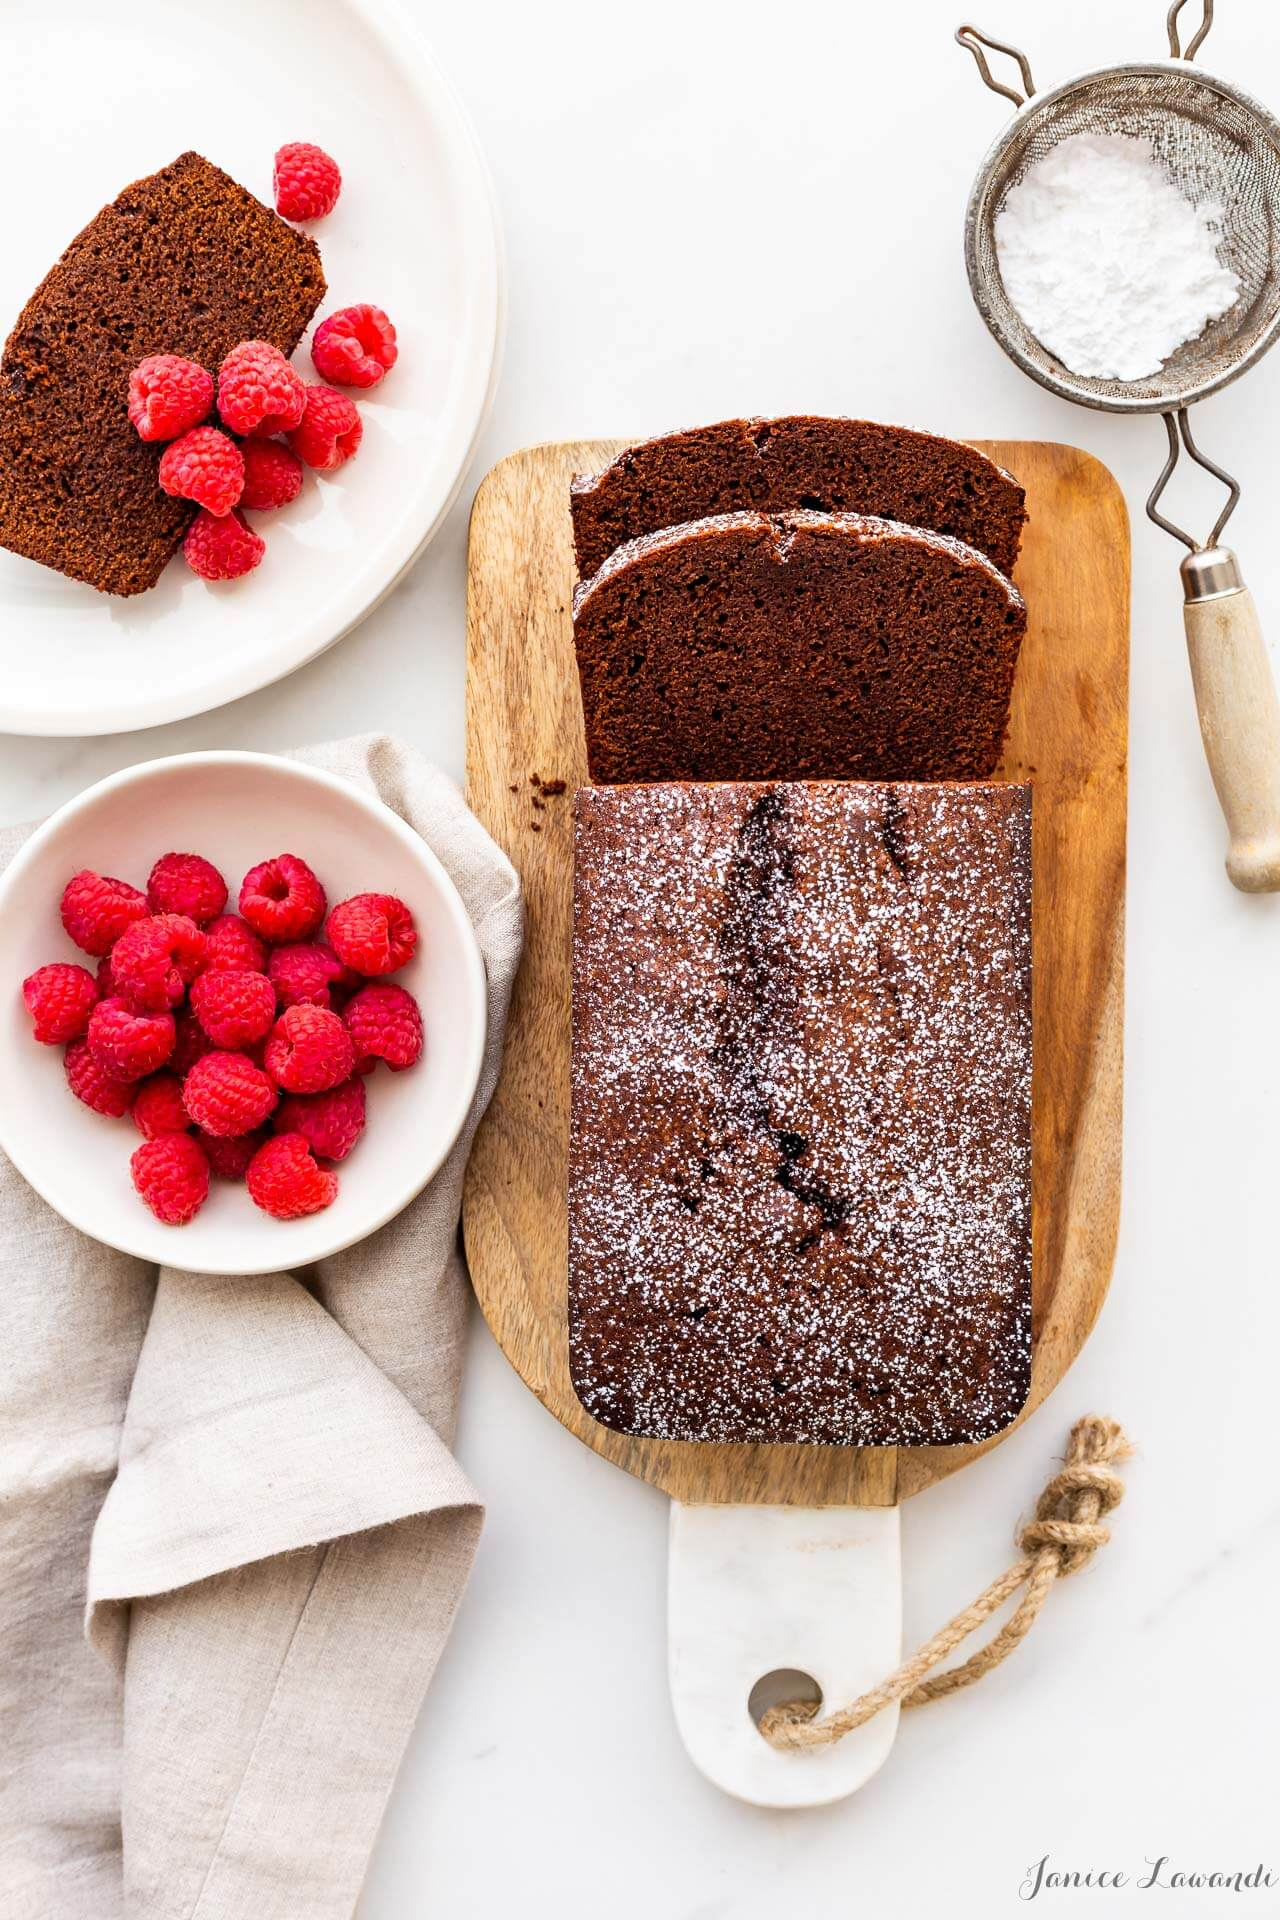 Slices of chocolate pound cake loaf cake flavoured with cinnamon and espresso, served on a cutting boards, slices topped with fresh raspberries